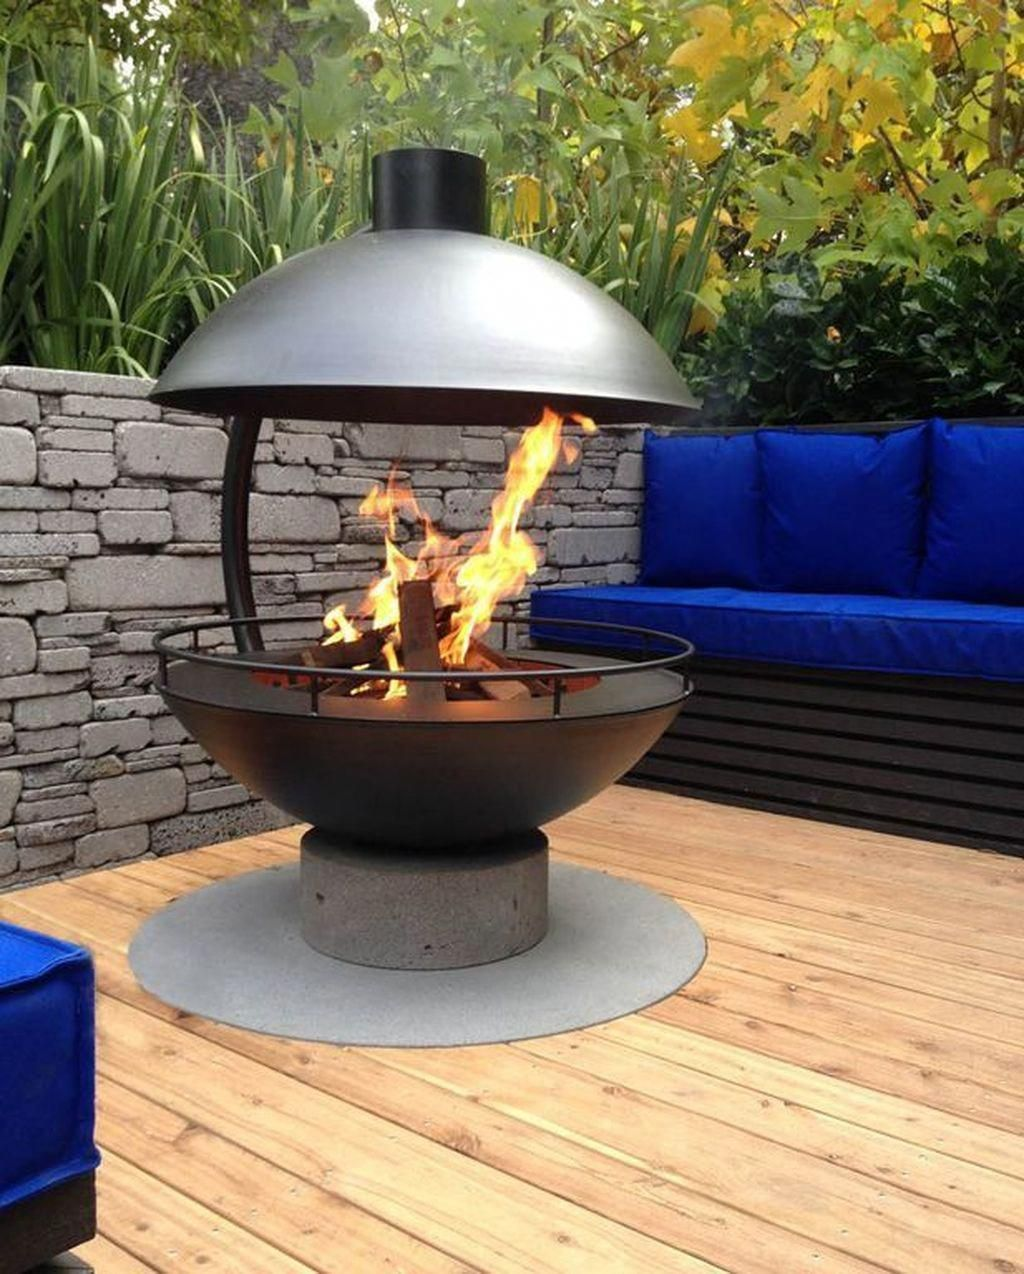 This outdoor fire area is a really inspirational and